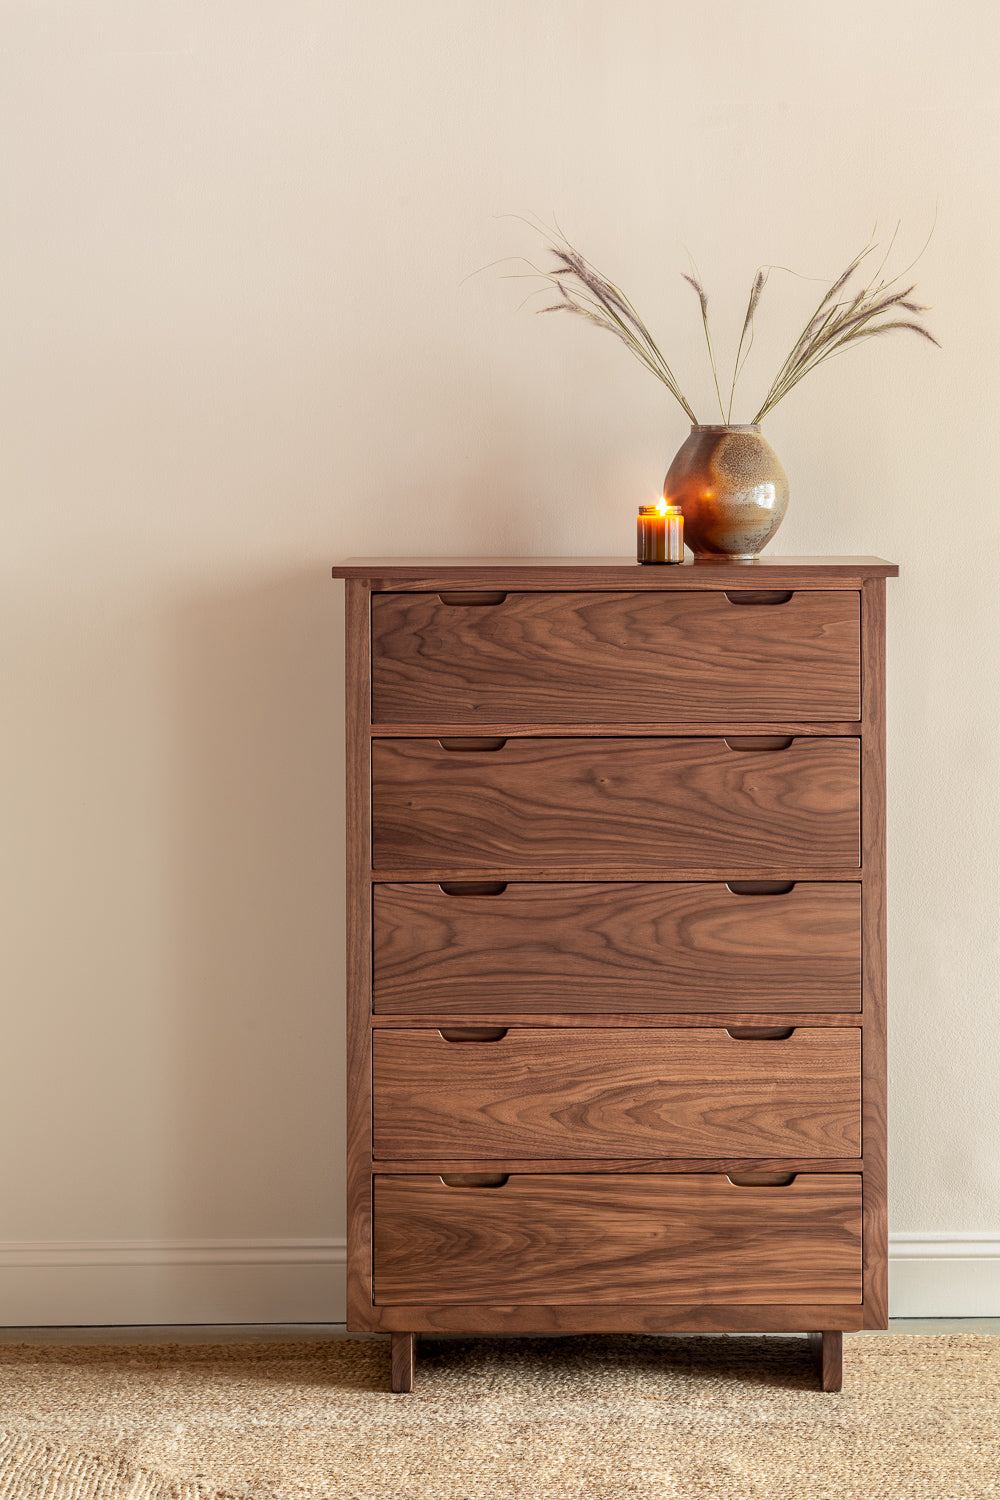 Modern five drawer Foundation Chest in walnut wood with pottery and candle